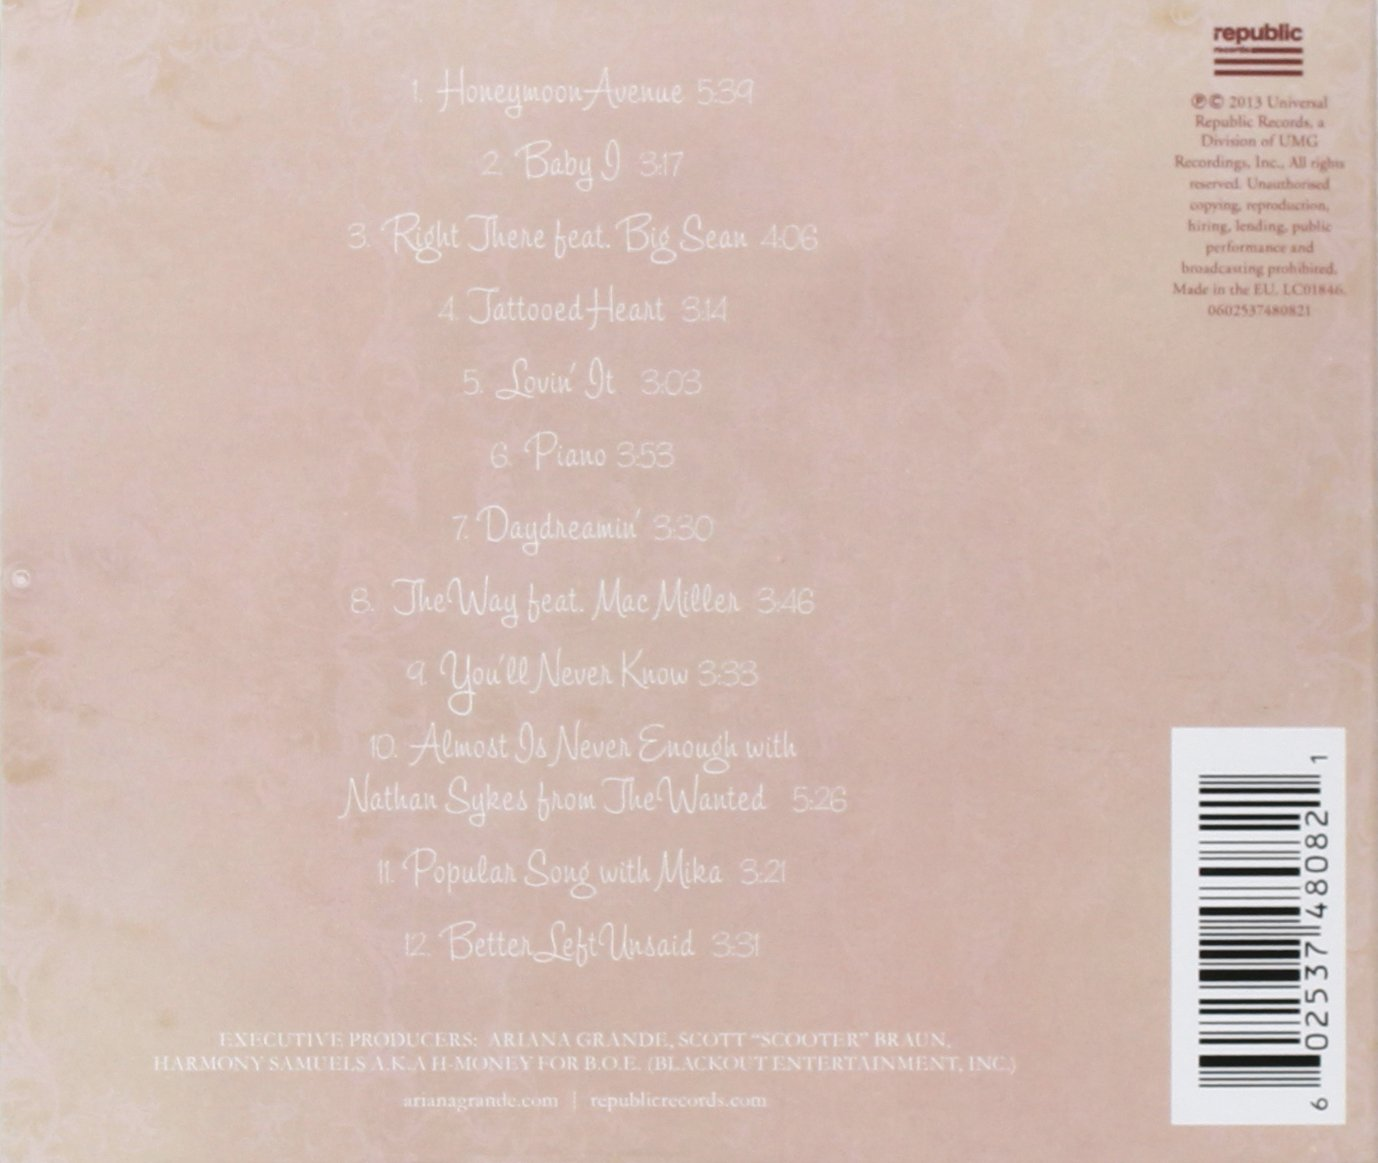 Collectionydwn Yours Truly Ariana Grande Tracklist on Gallery Of Westward Expansion